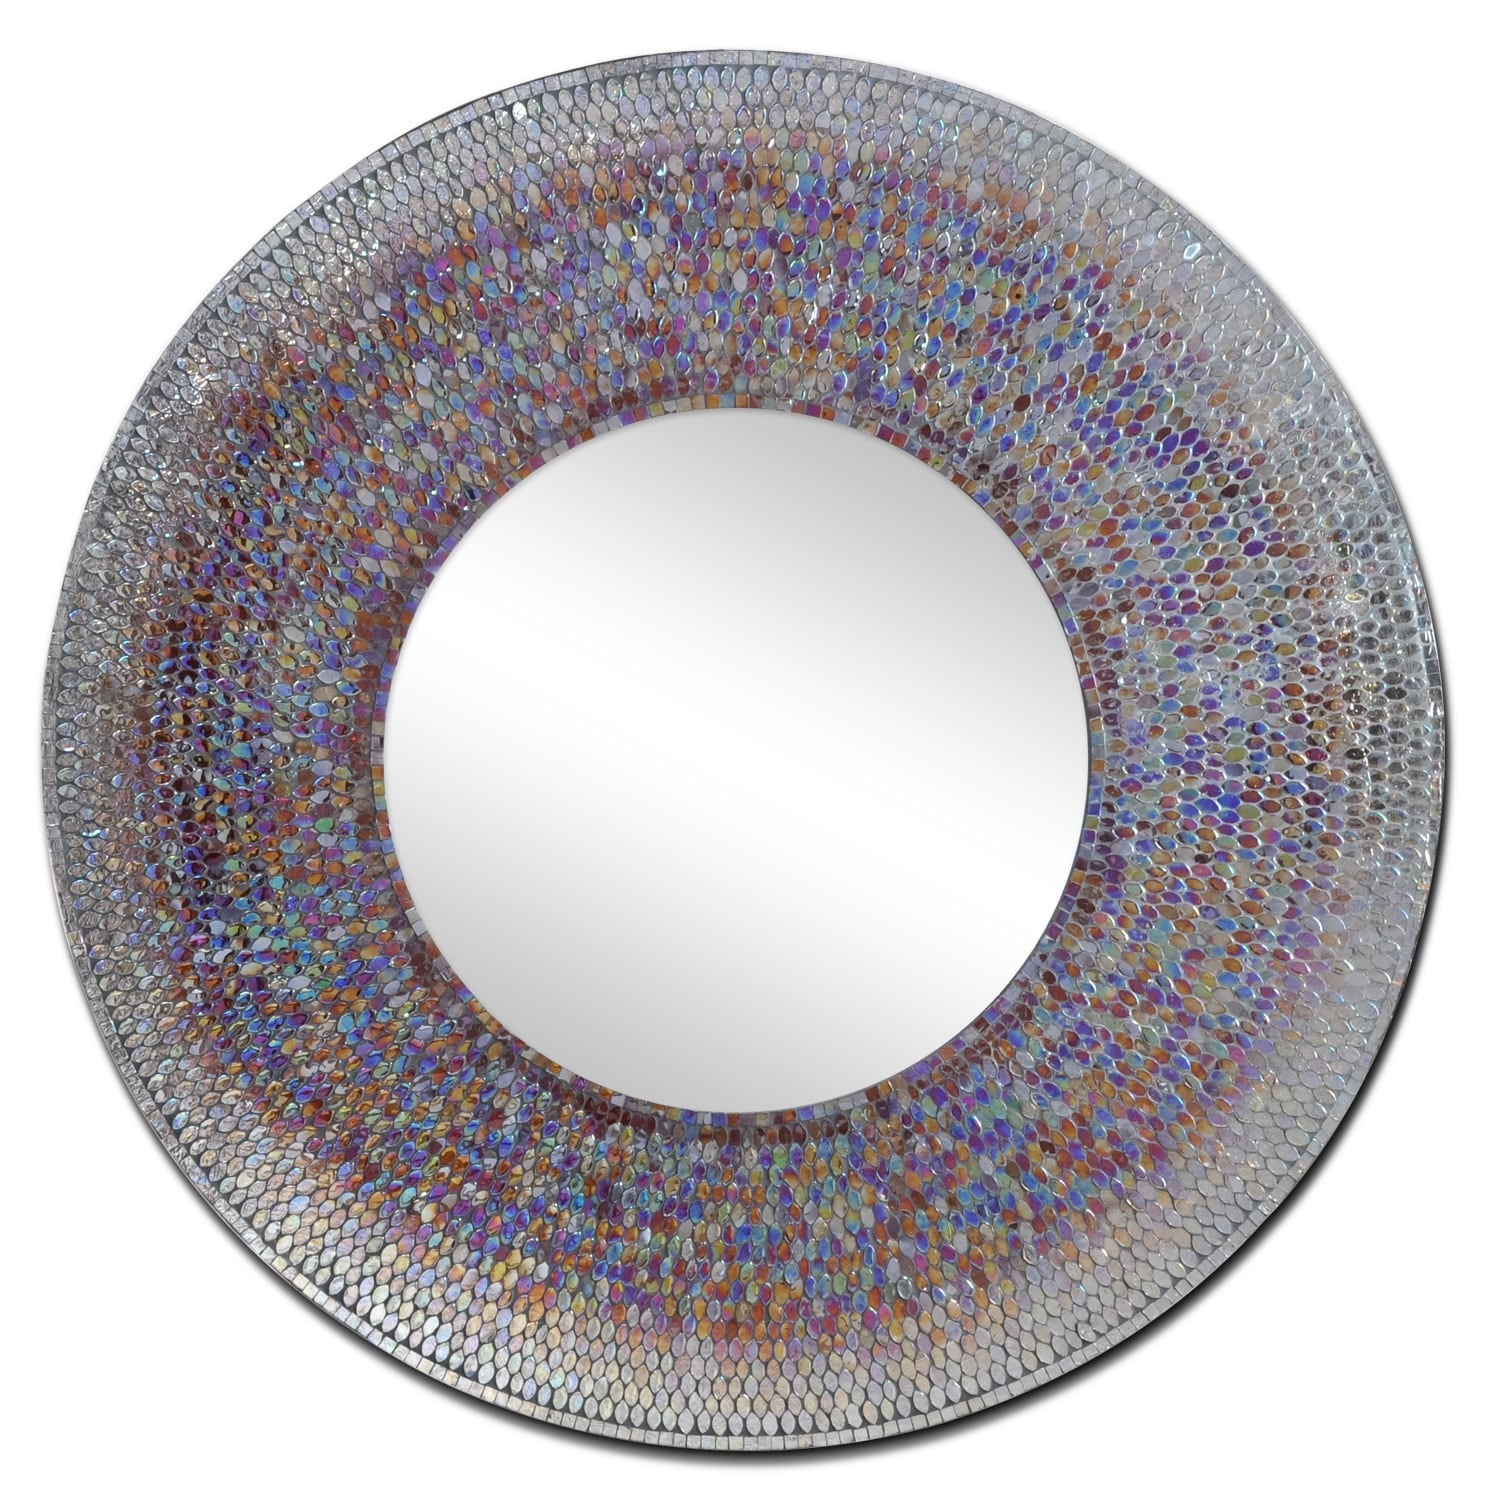 Home Accessories - Seychelle Mirror